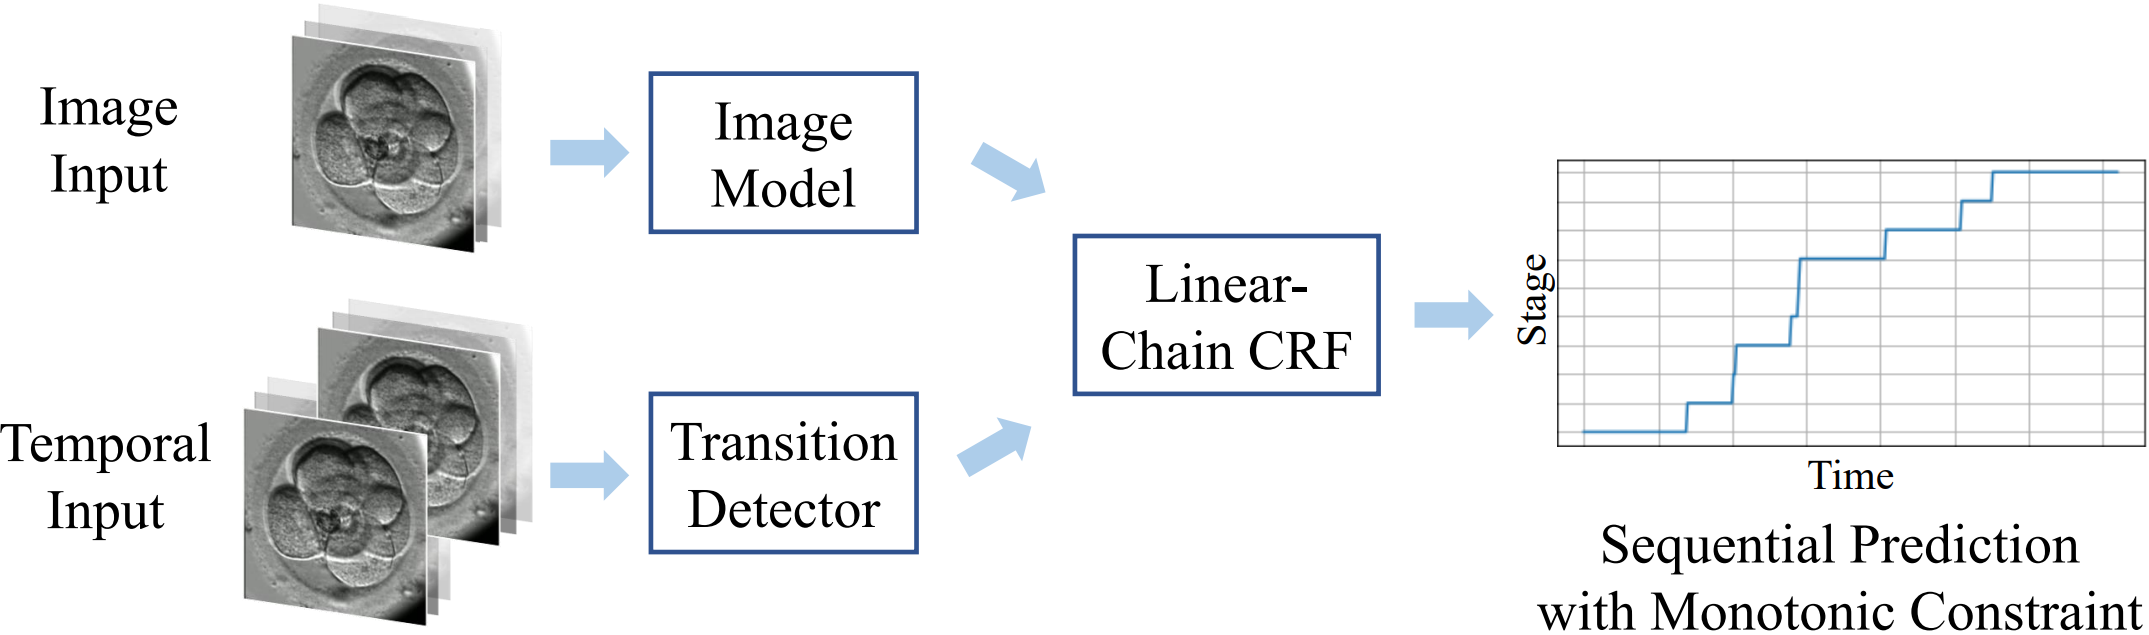 Developmental Stage Classification of Embryos Using Two-Stream Neural Network with Linear-Chain Conditional Random Field